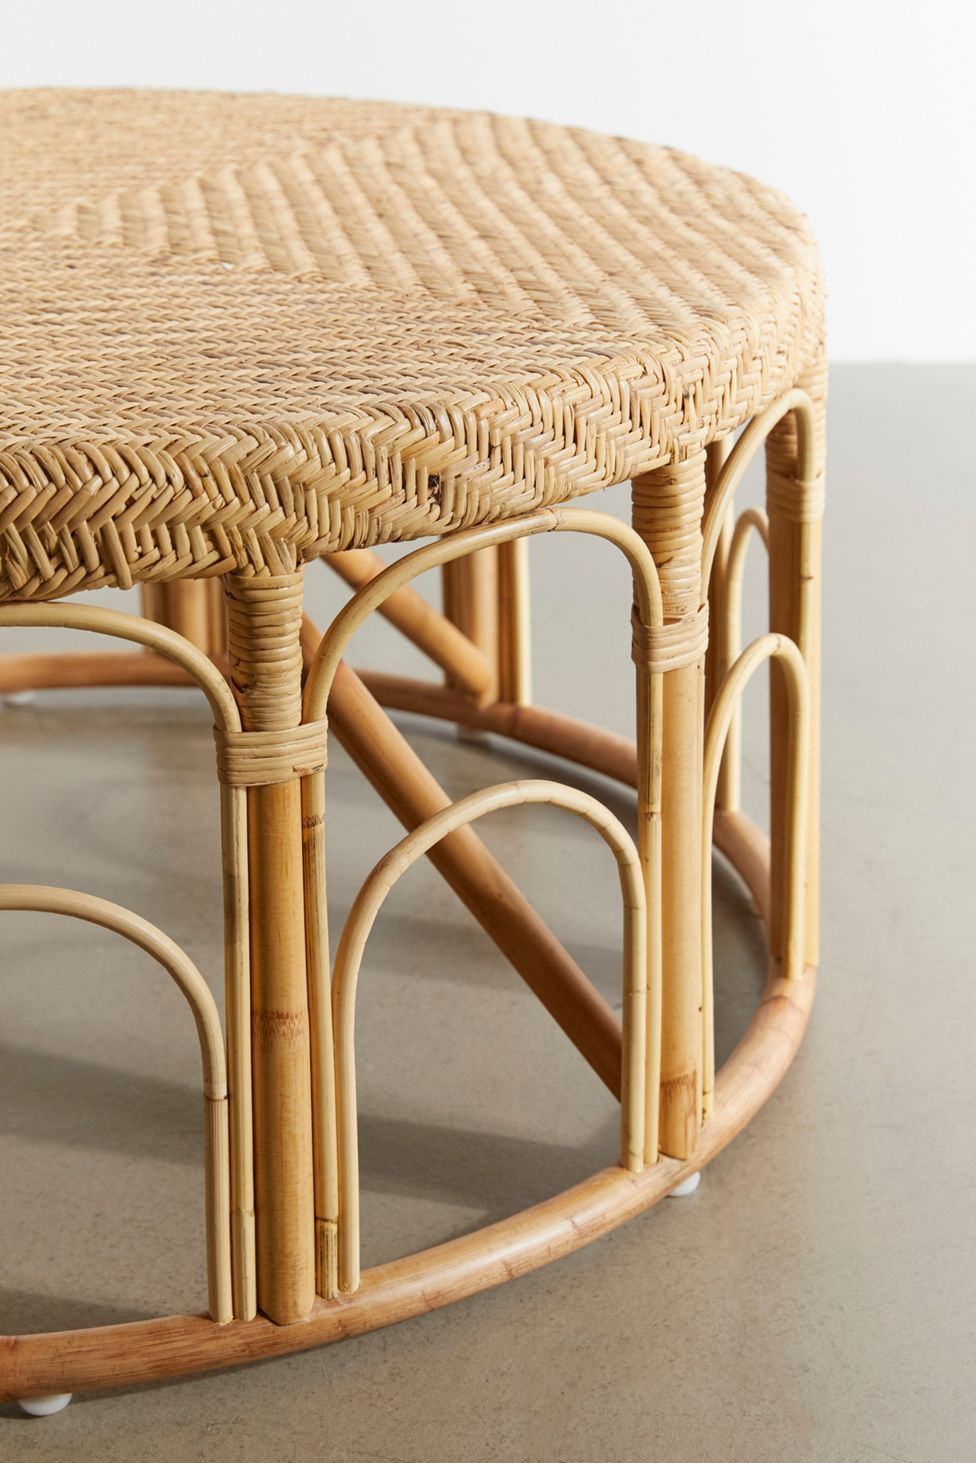 Lulu Rattan Coffee Table Urban Outfitters Coffee Table Urban Outfitters Rattan Coffee Table Round Coffee Table Living Room [ 1463 x 976 Pixel ]